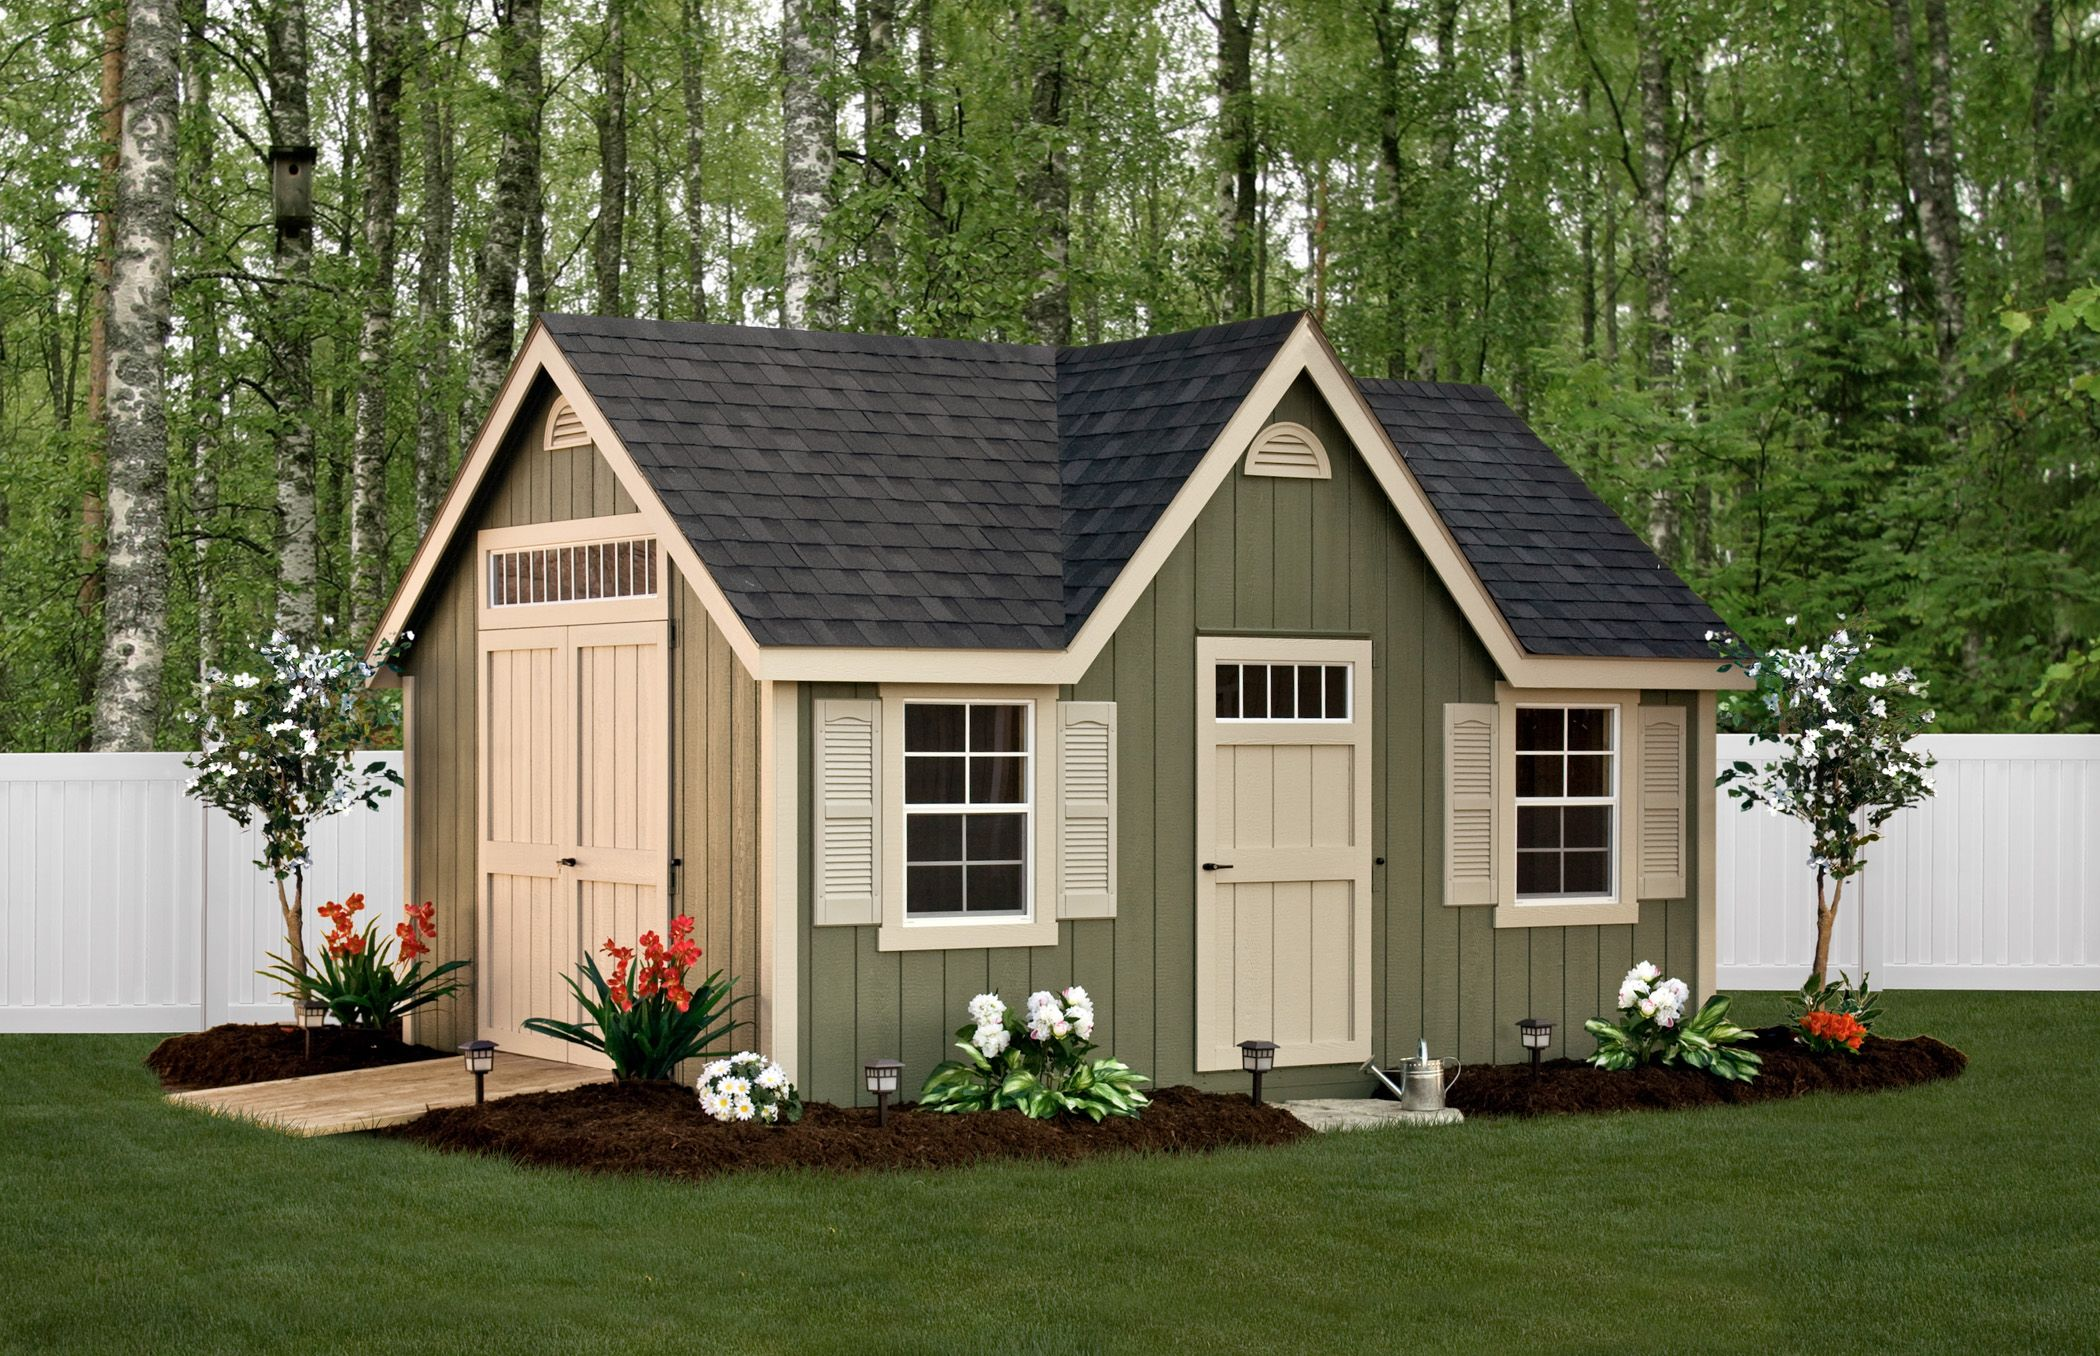 Explore Backyard Sheds, Garden Sheds, And More!